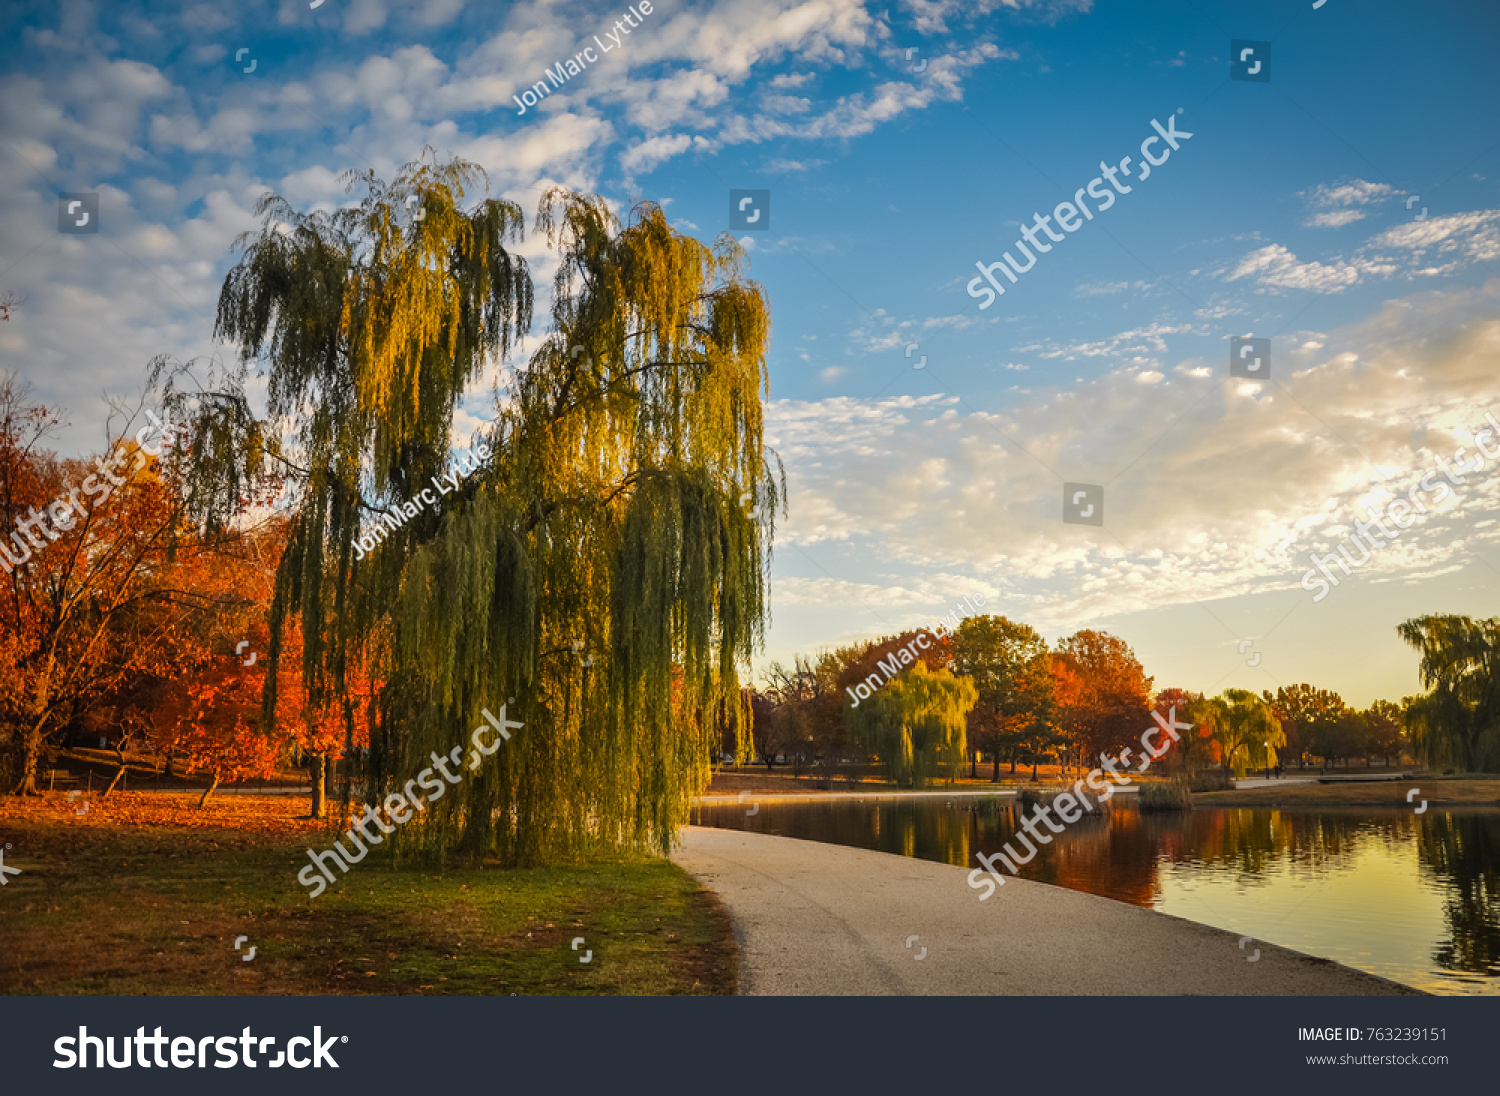 Weeping Willow By Constitution Gardens Pond Stock Photo (Royalty ...